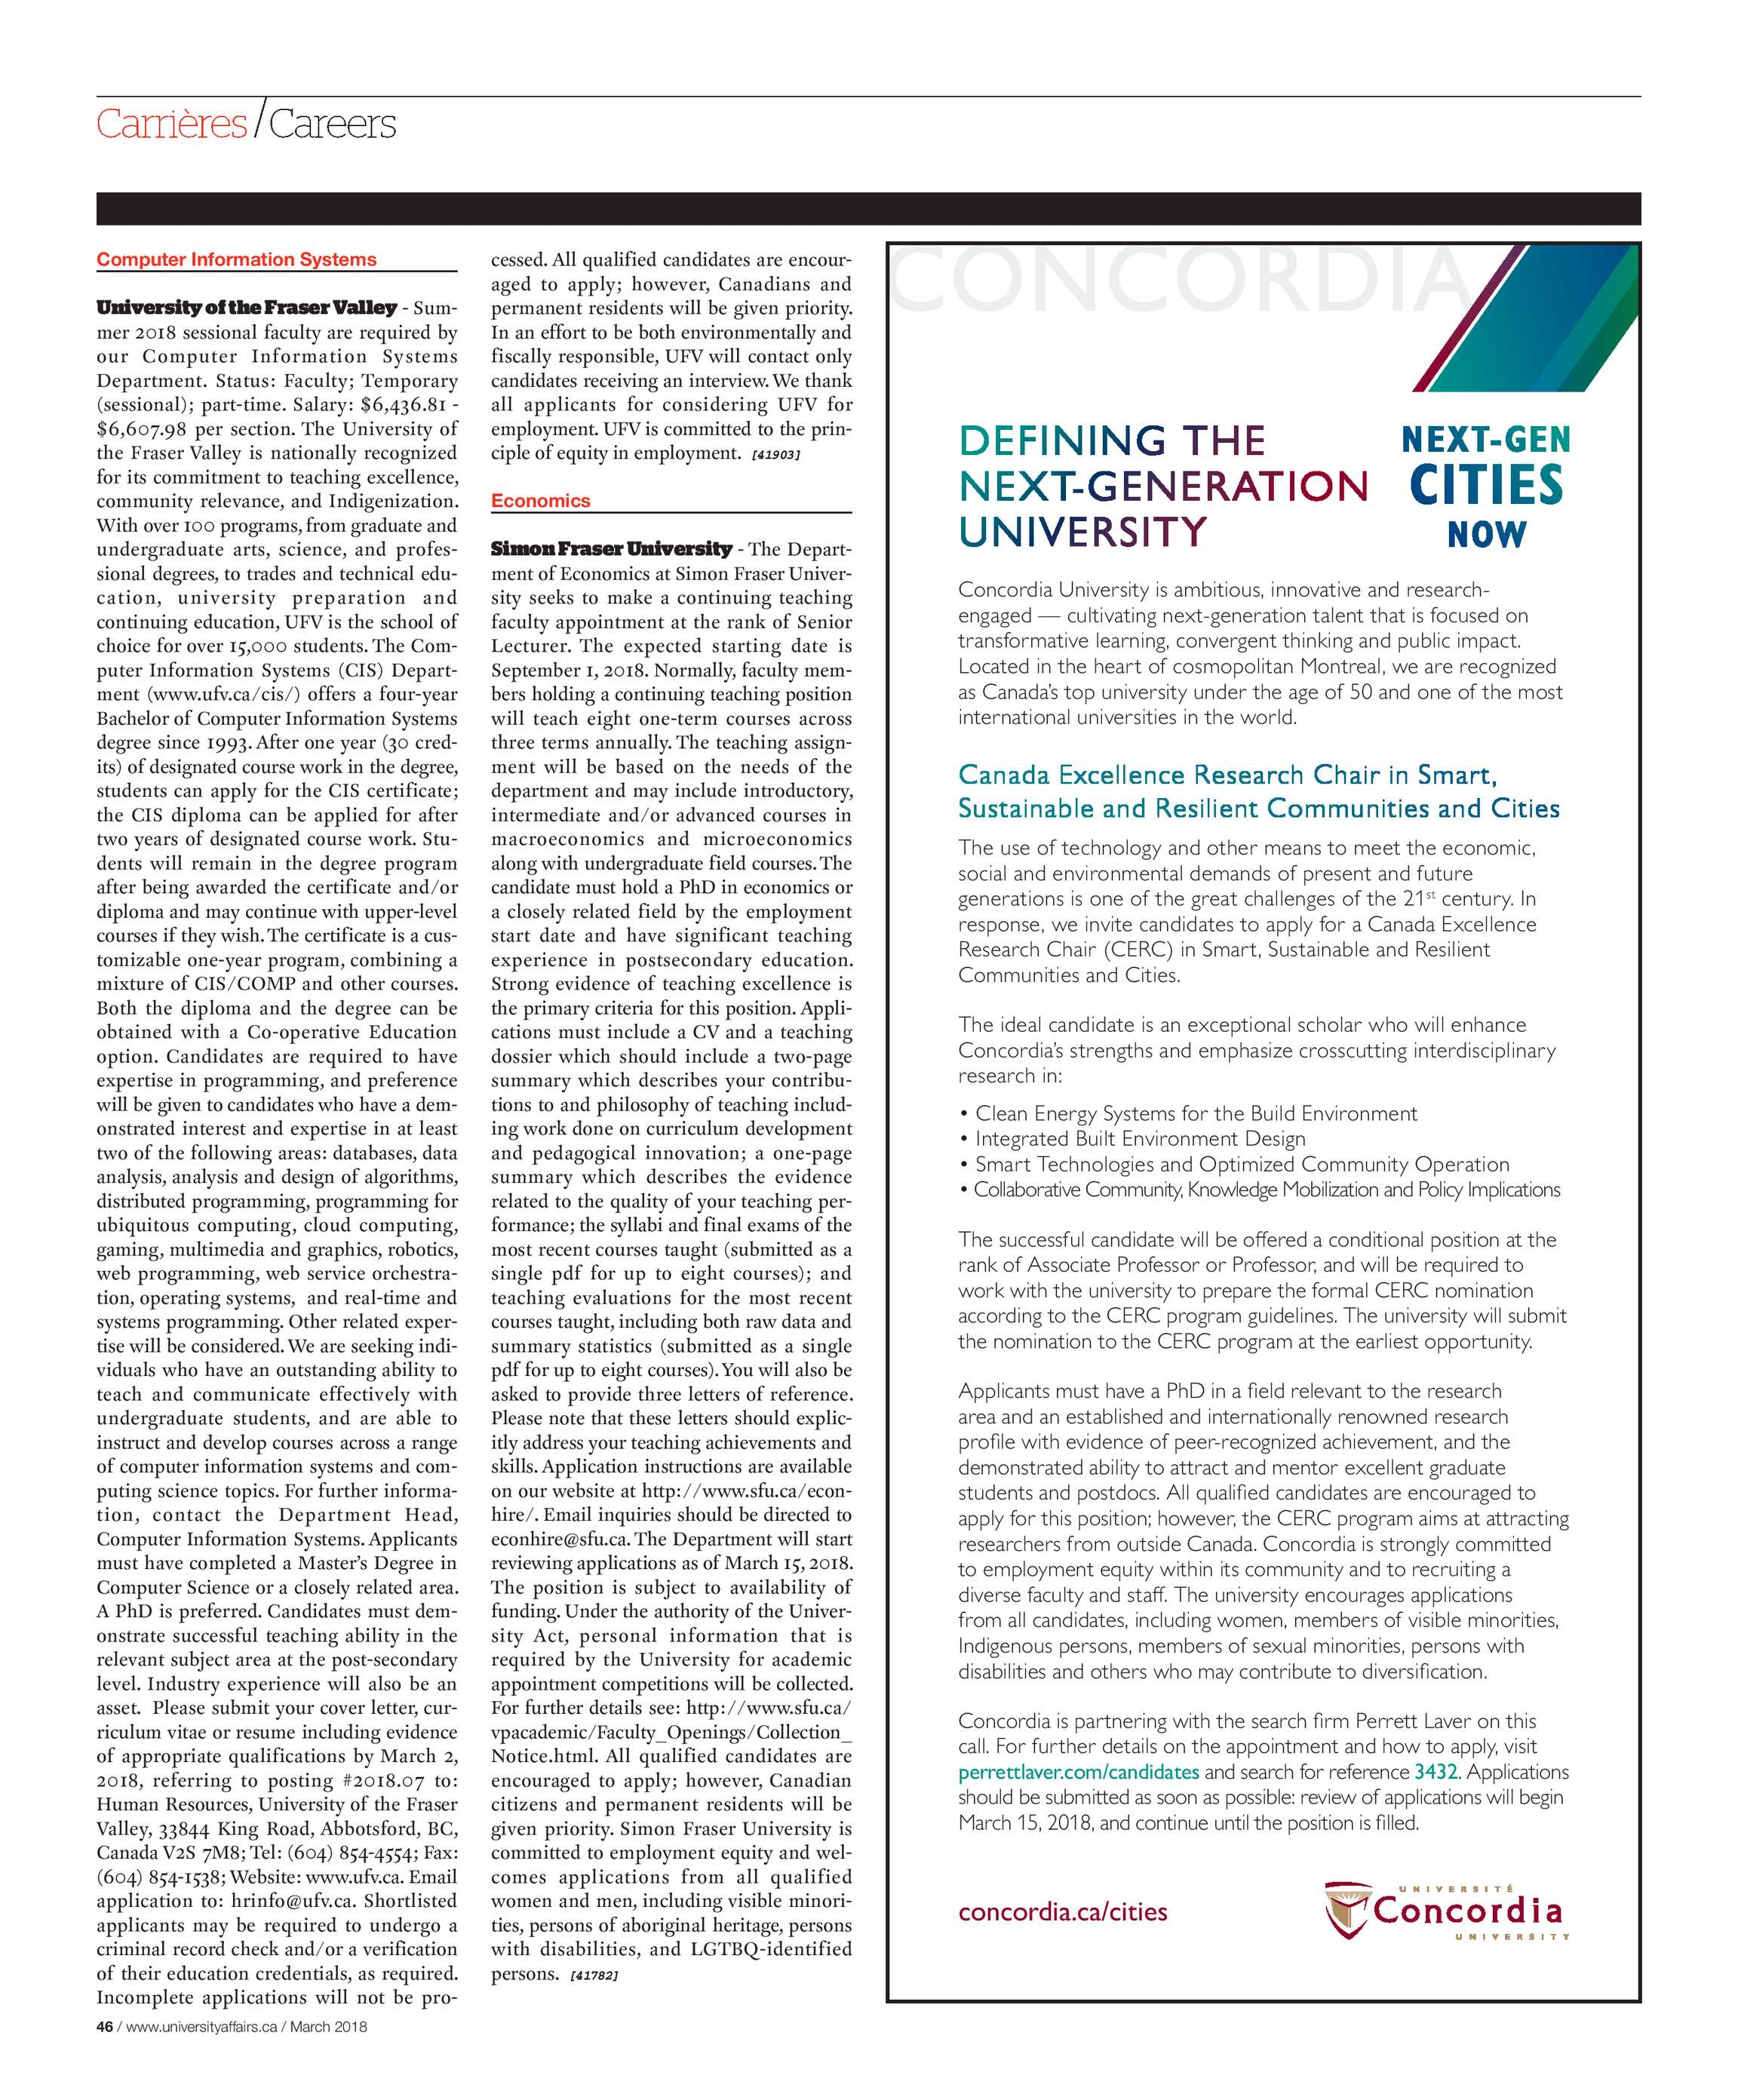 University Affairs - March 2018 - page 46